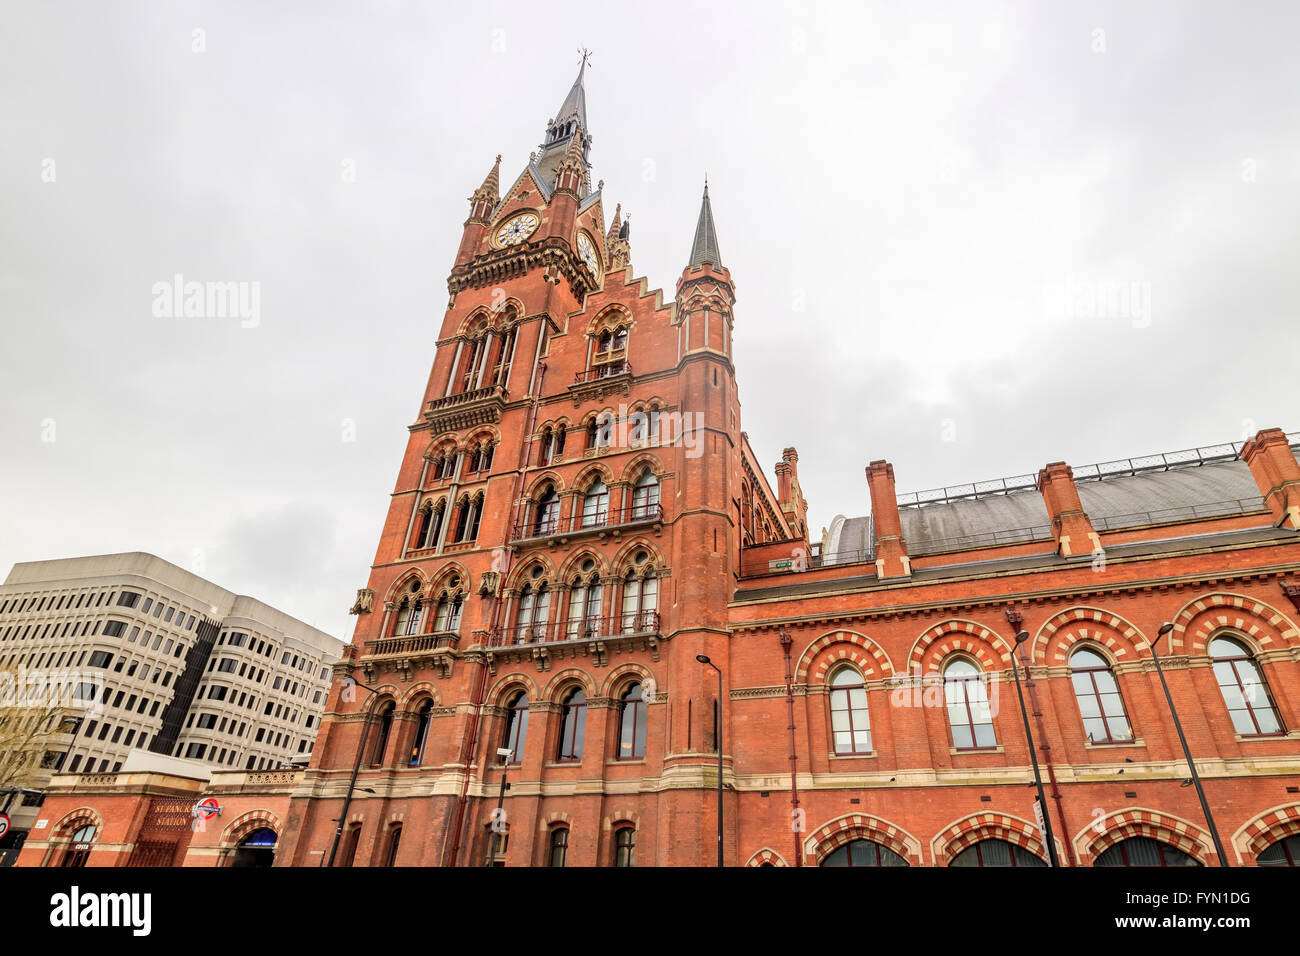 The historical St Pancras International station in a cloudy day - Stock Image